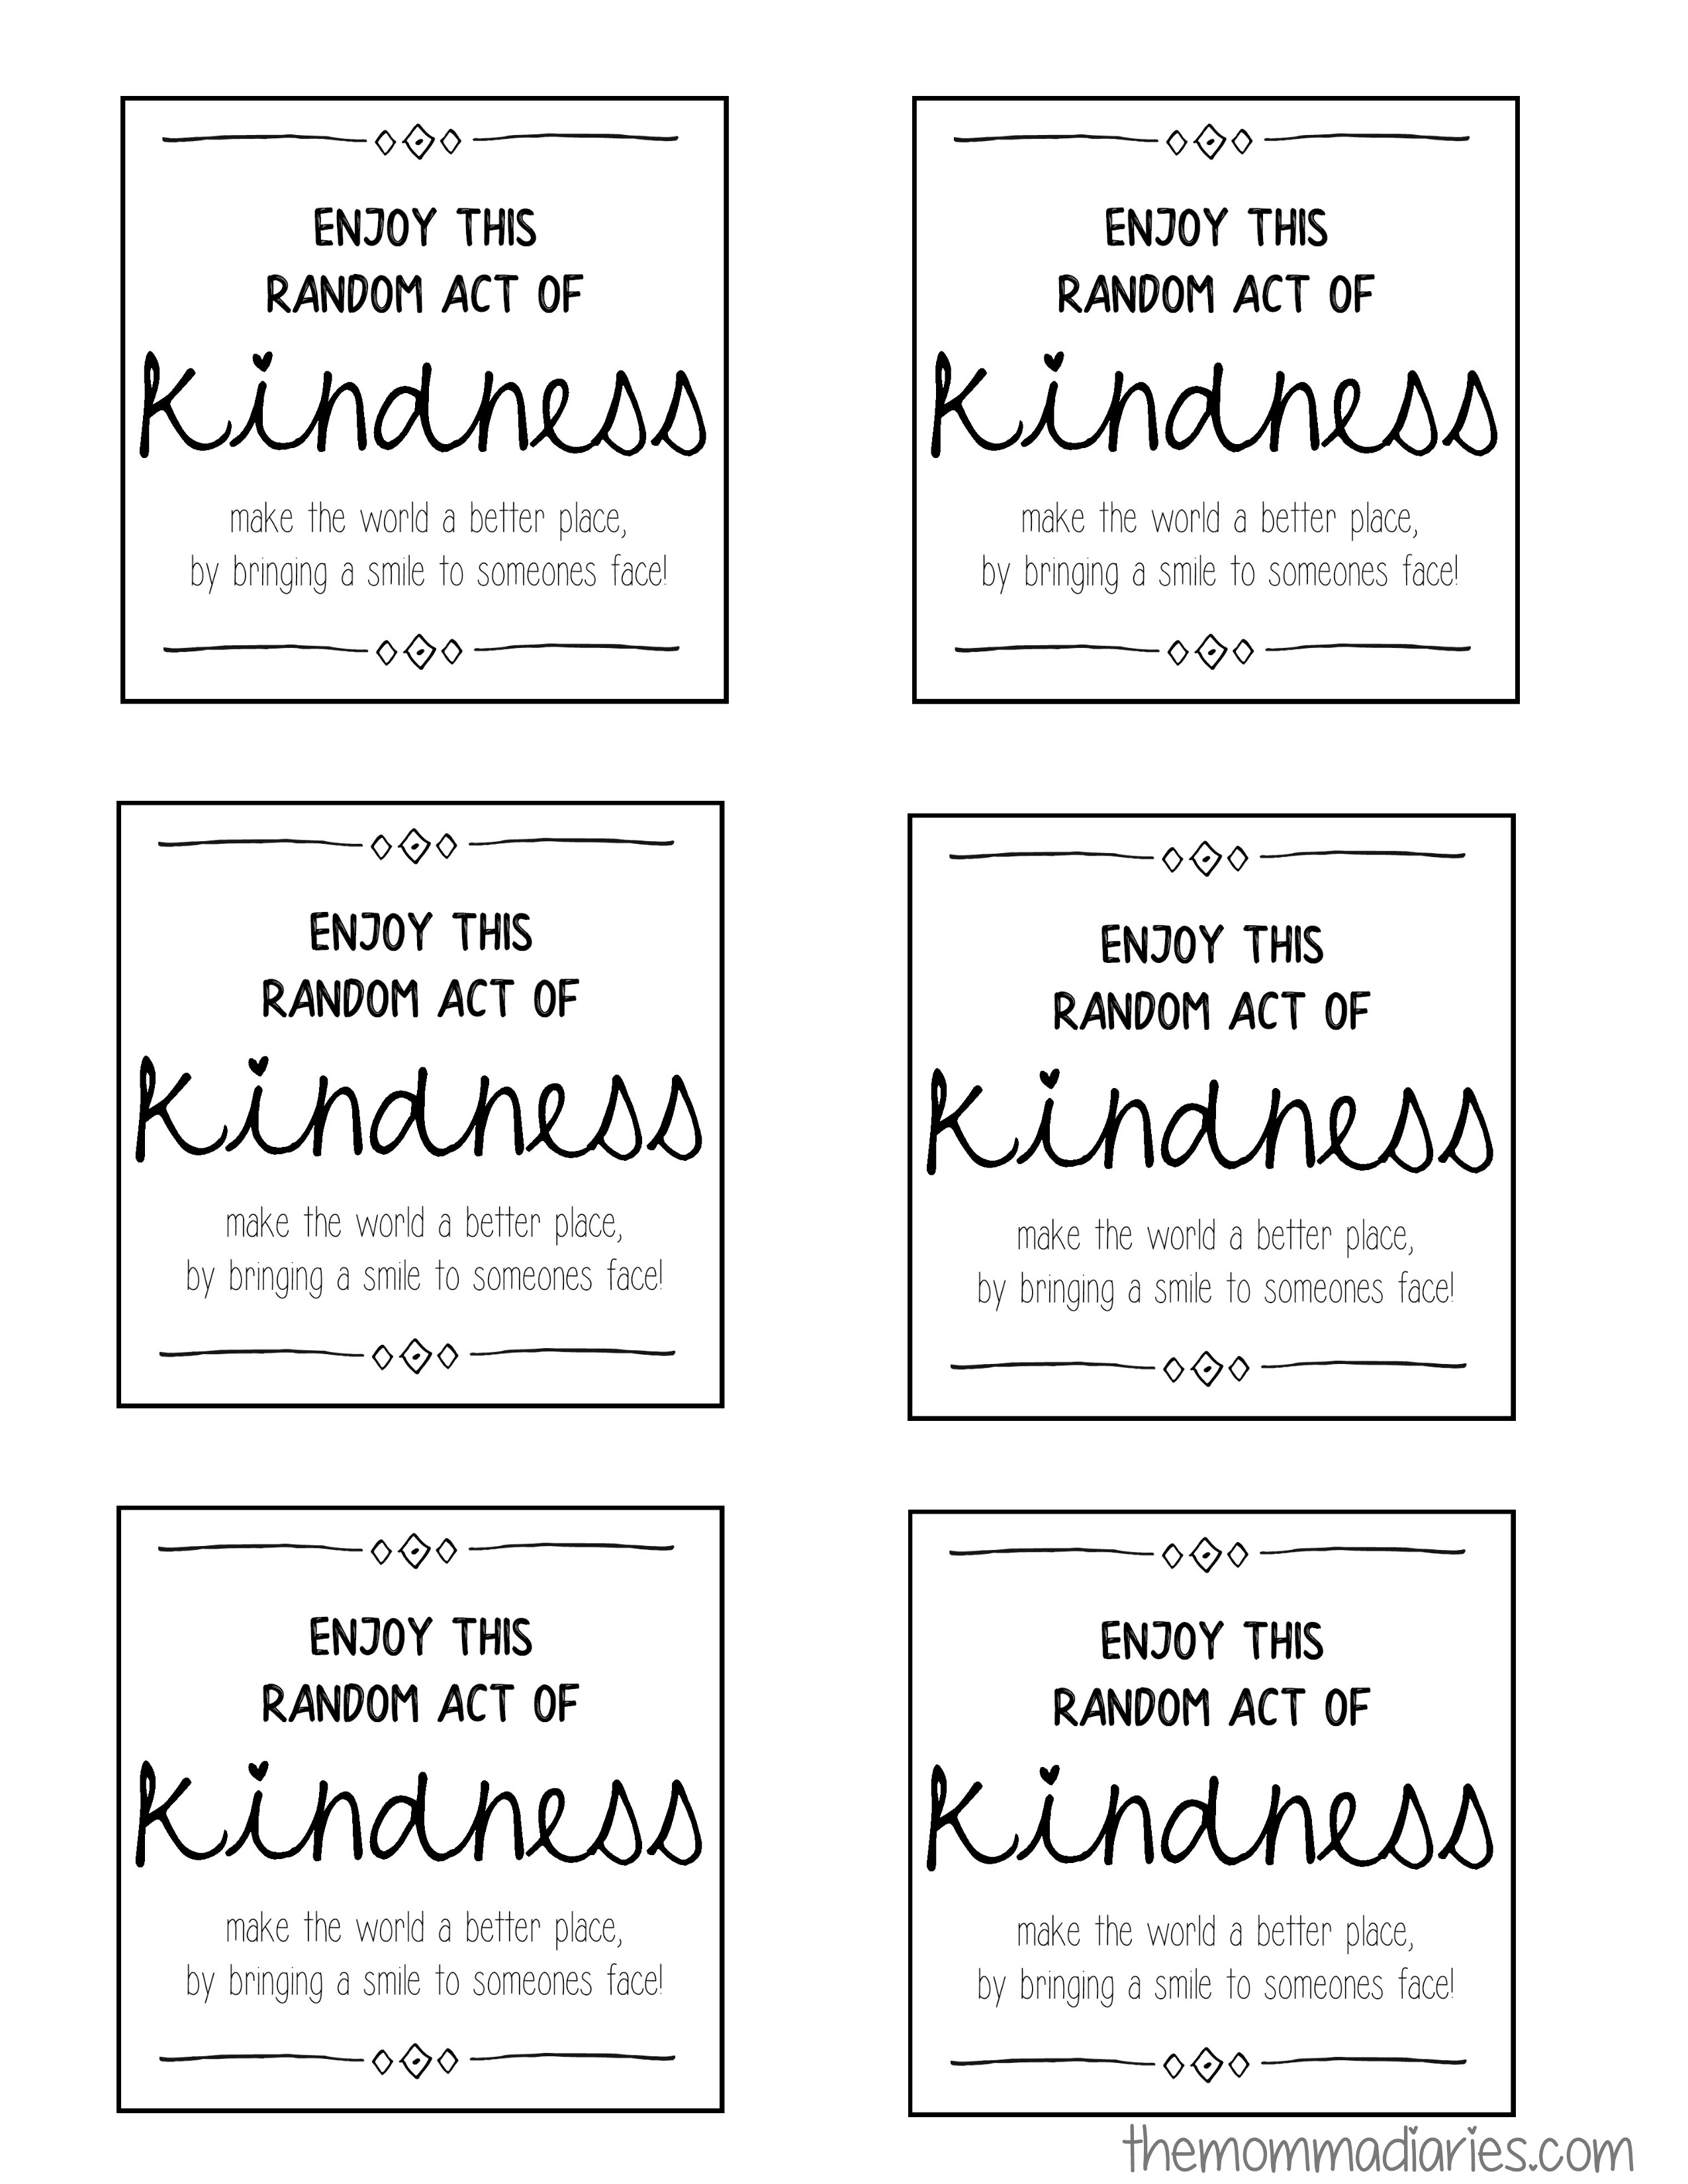 image regarding Random Act of Kindness Printable titled 25 Times of Random Functions of Kindness + Absolutely free Printables! - The